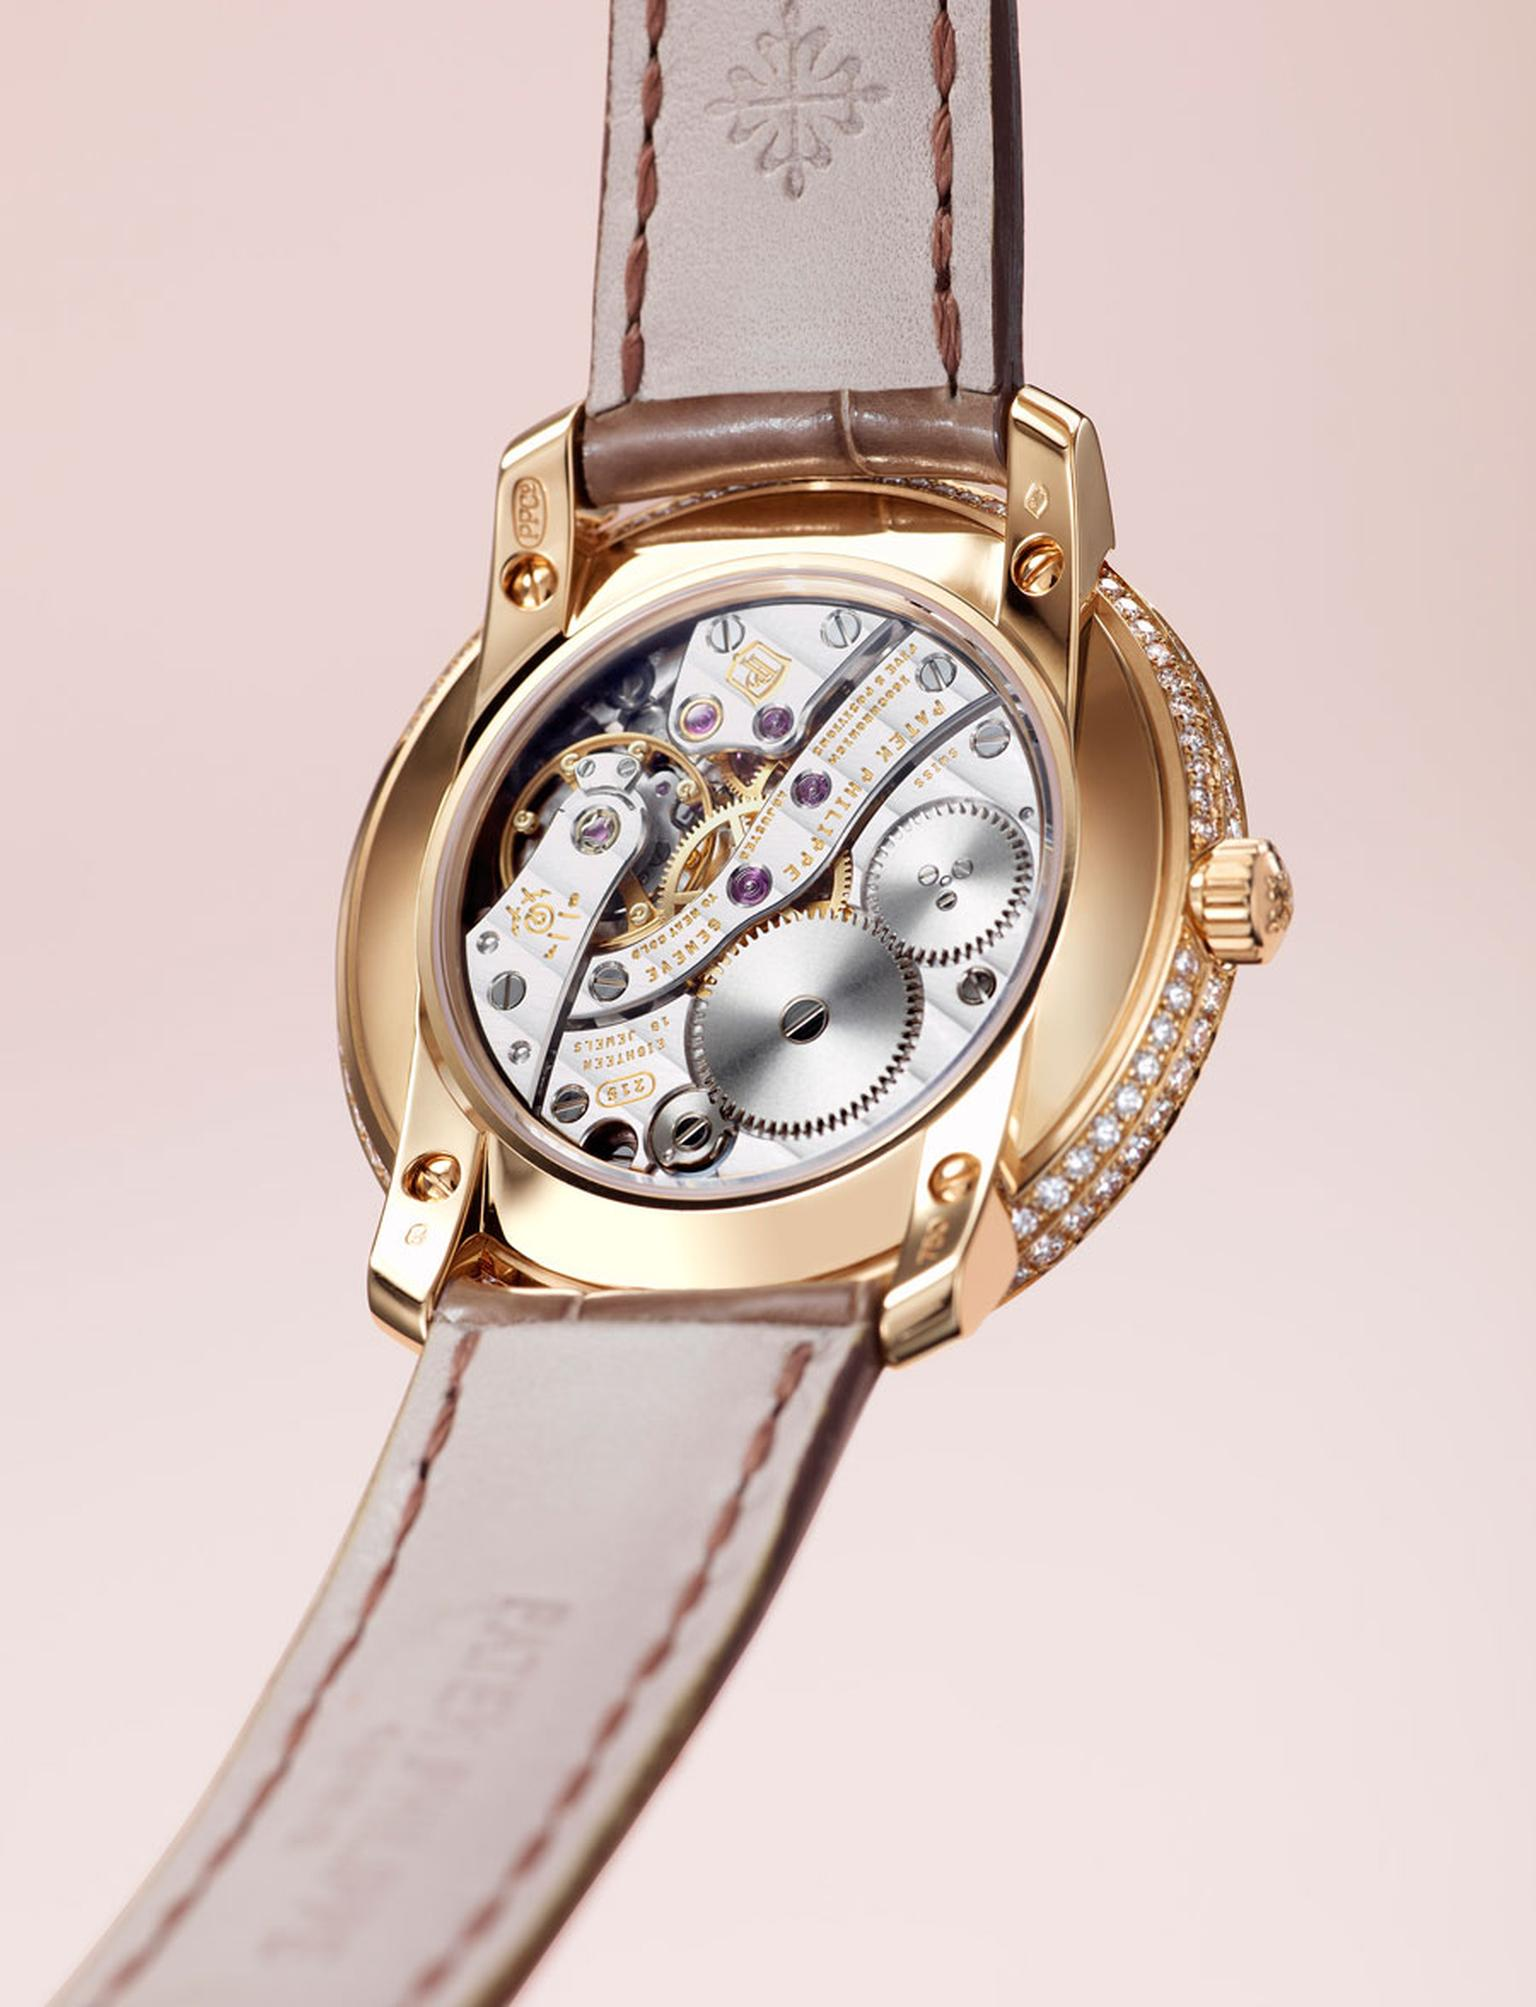 Patek-Philippe-Diamond-Ribbon-BackC10-12-14018.jpg